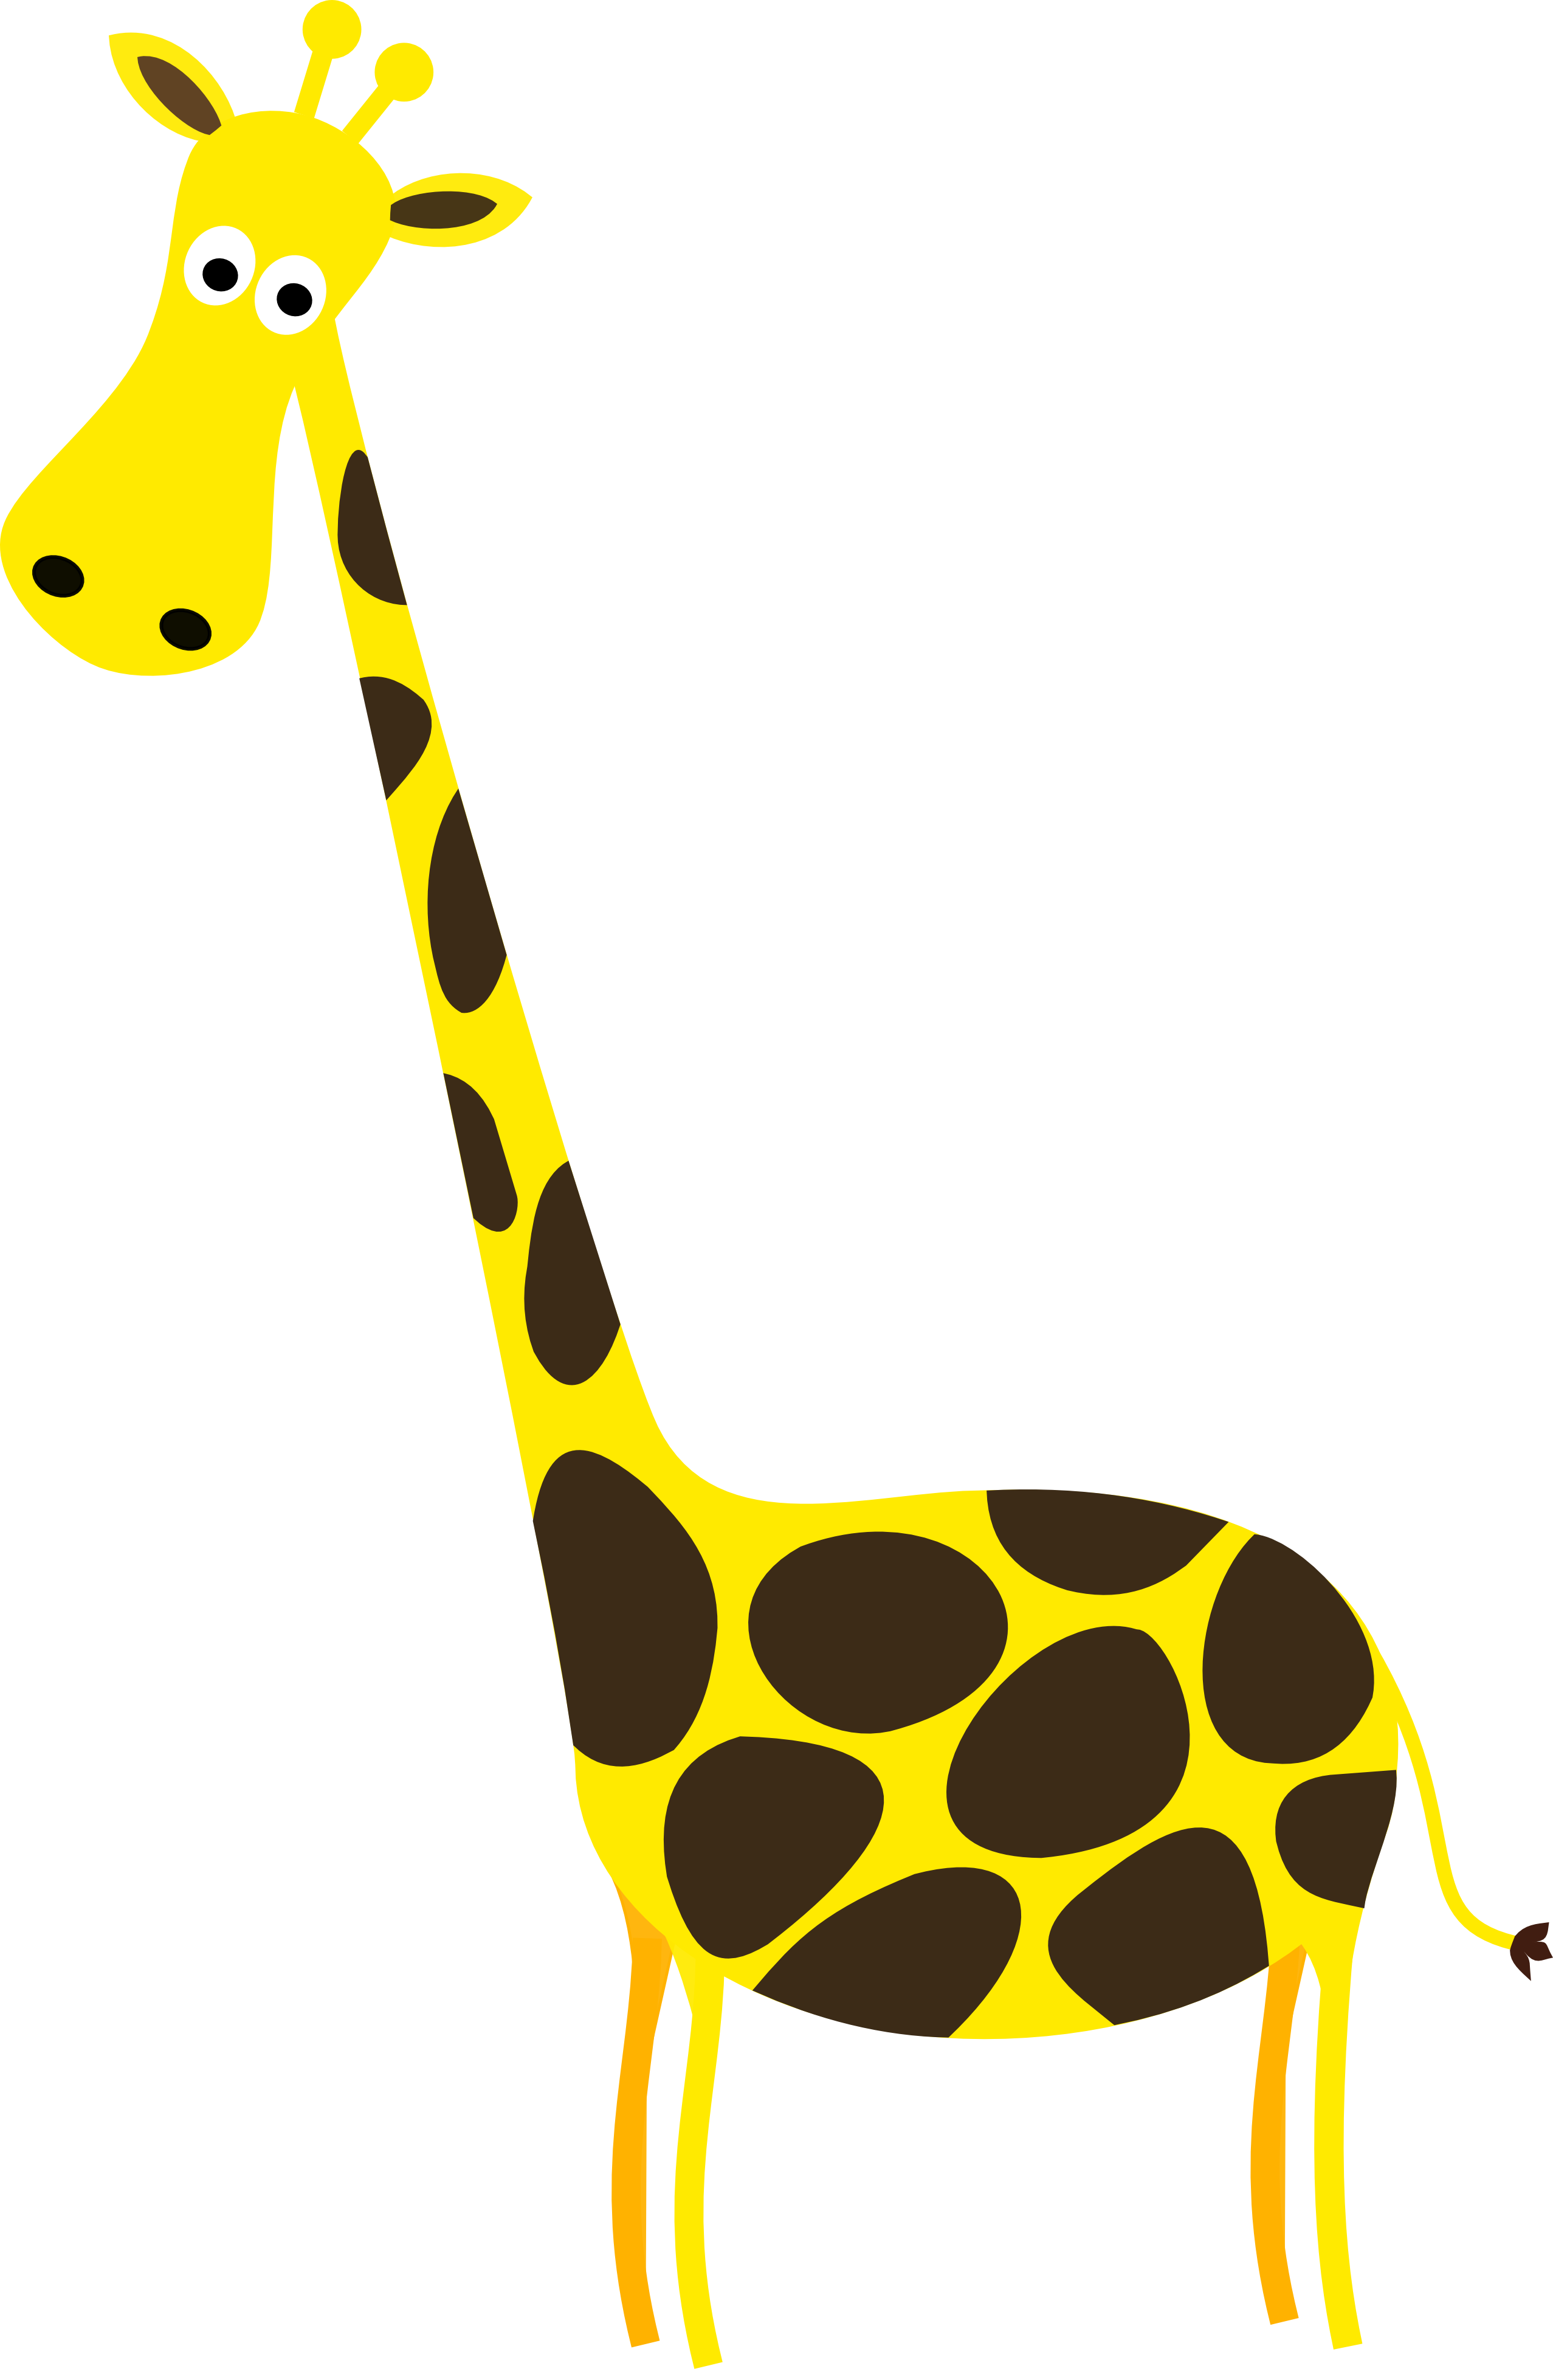 2555x3915 Giraffe Clip Art Pictures Free Clipart Images